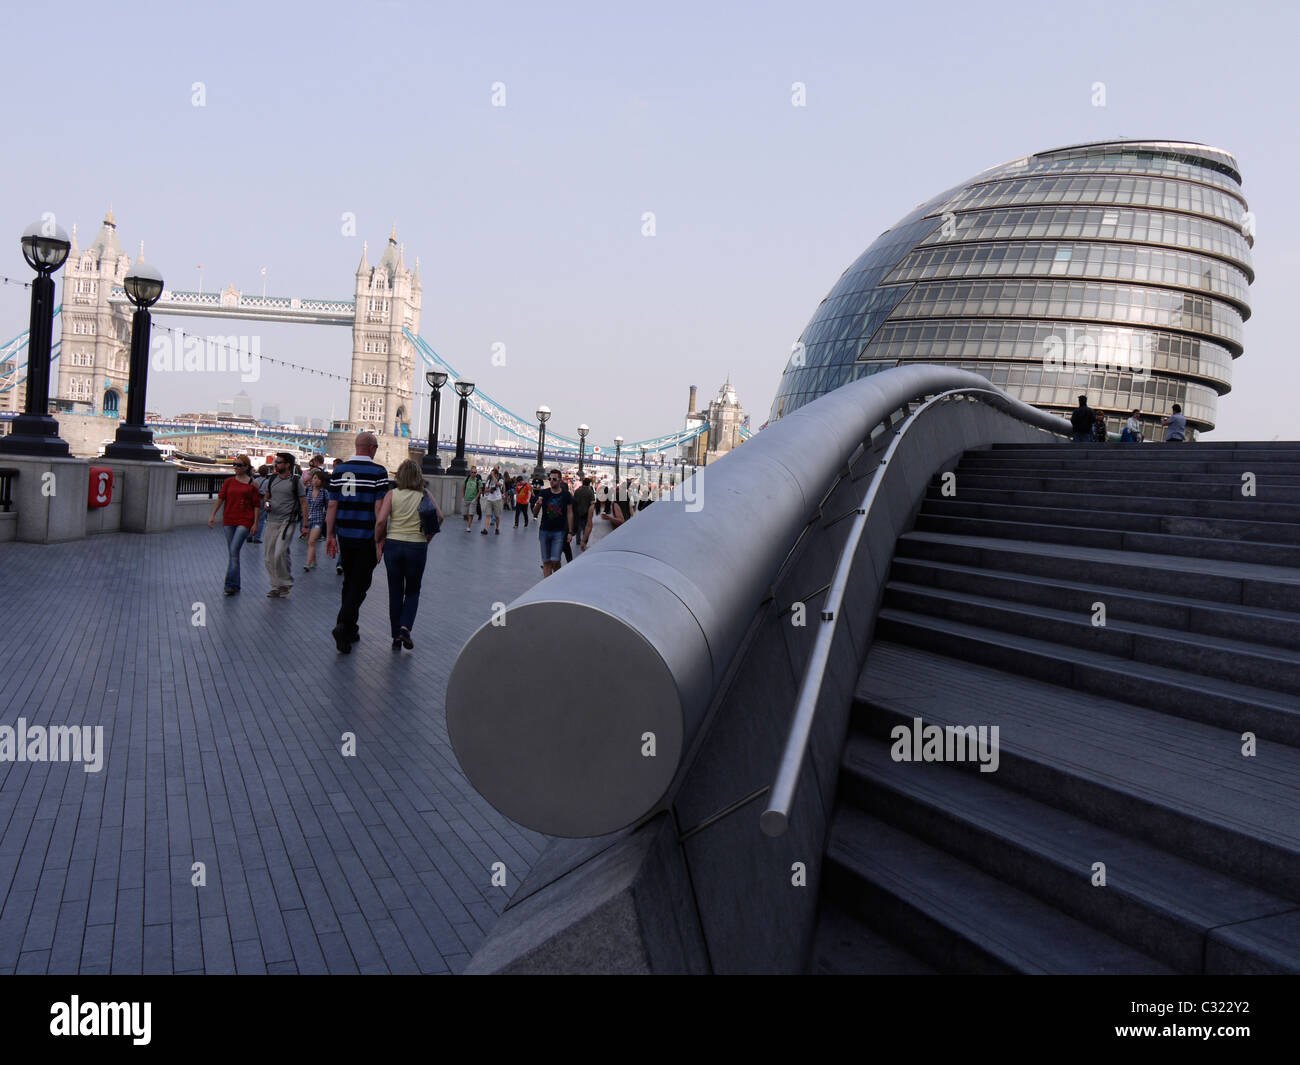 City Hall Home of the Greater London Authority City Hall is home to the Mayor of London, the London Assembly - Stock Image